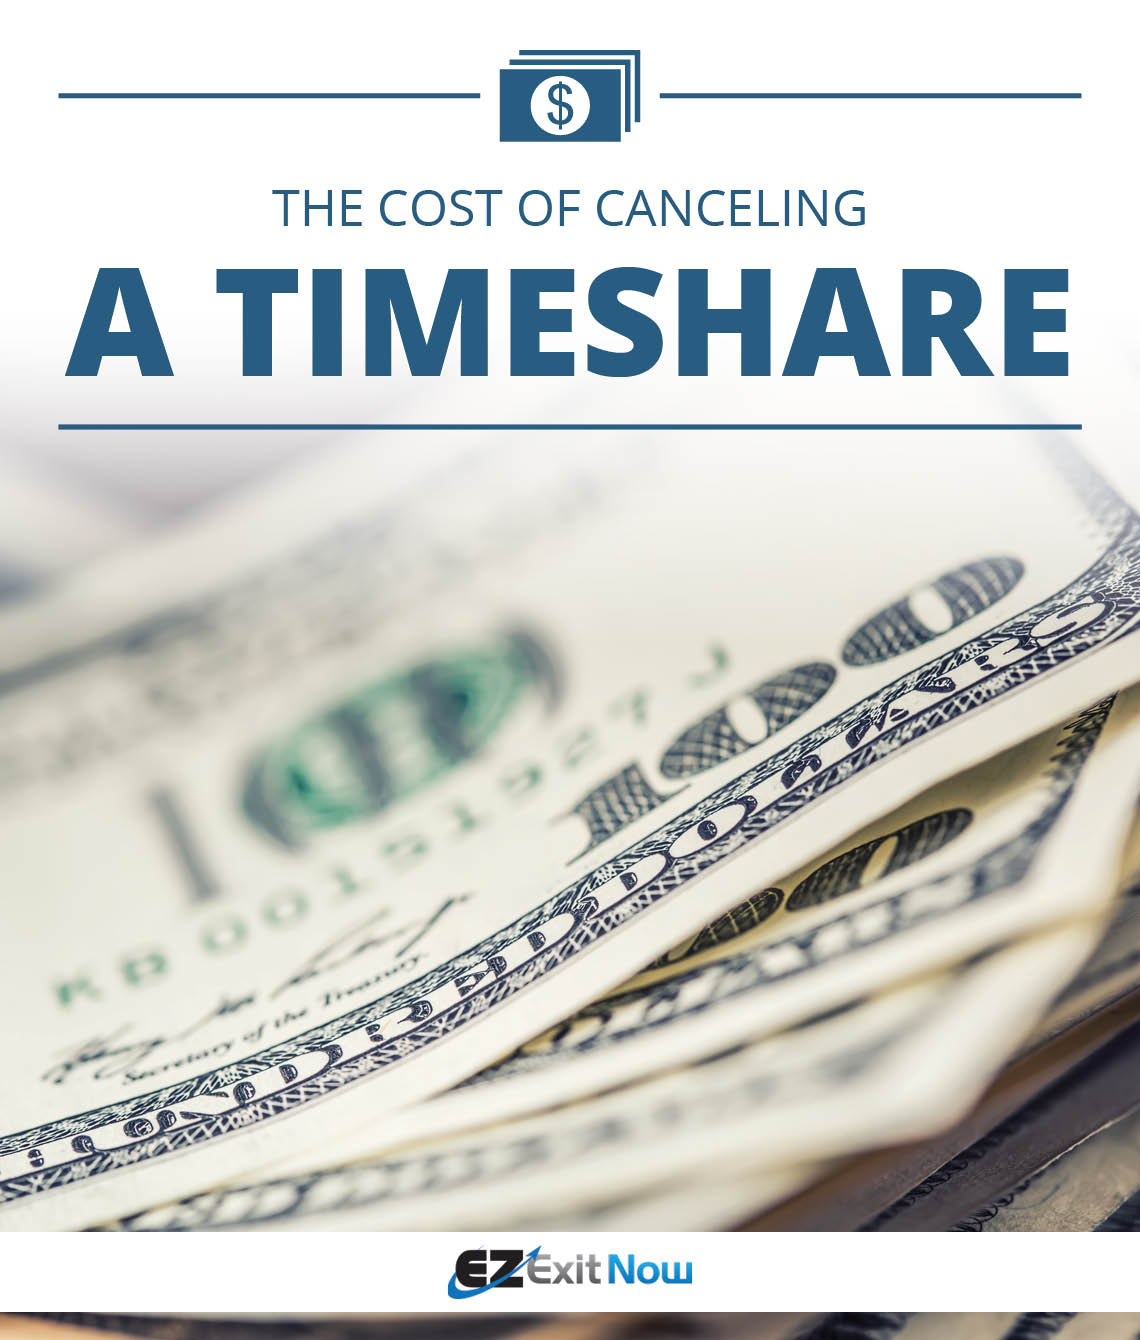 The Cost of Canceling a Timeshare